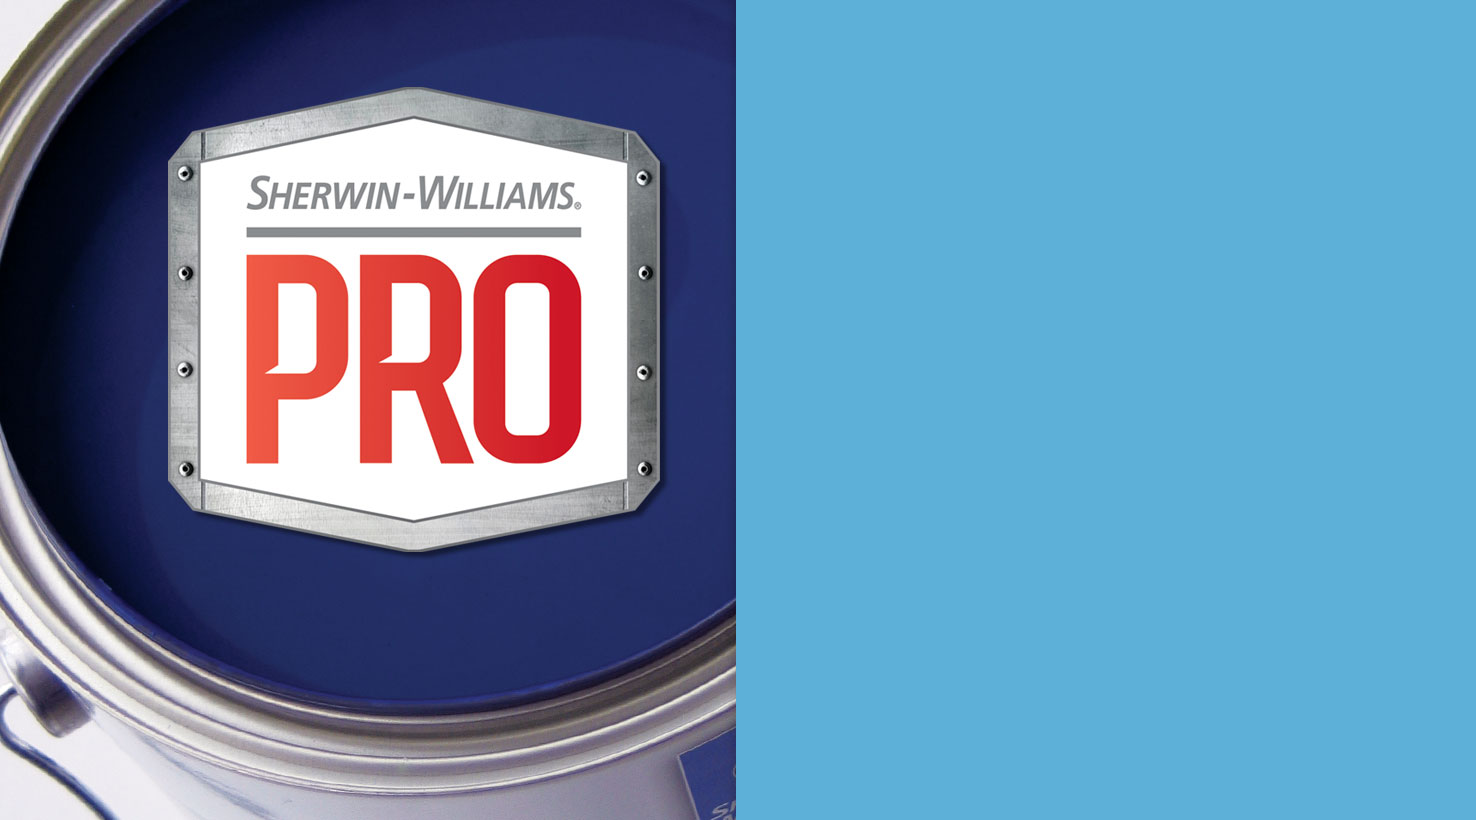 Sherwin williams provides industry leading service and for Paint pros